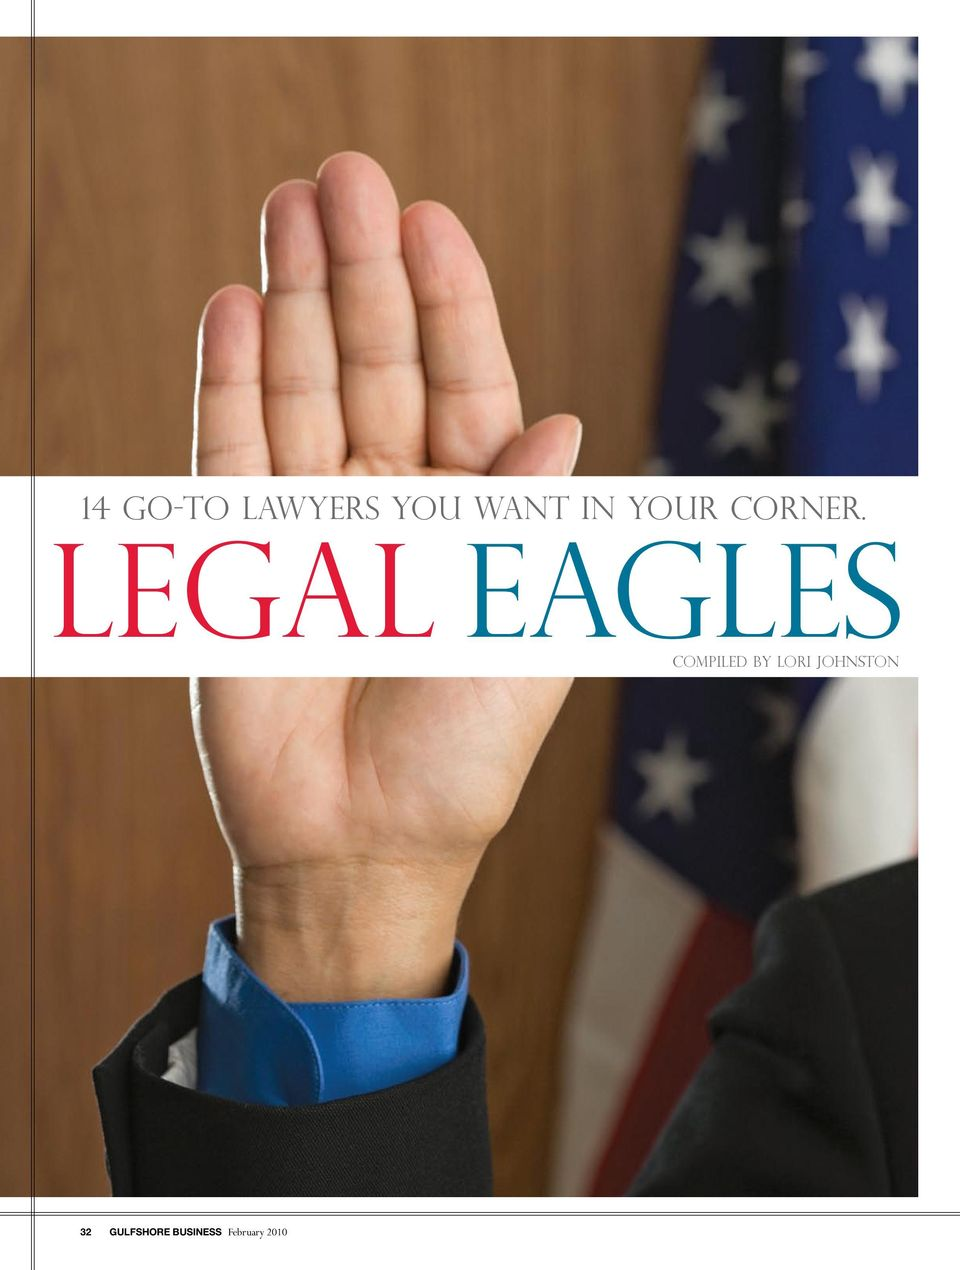 Legal Eagles compiled by